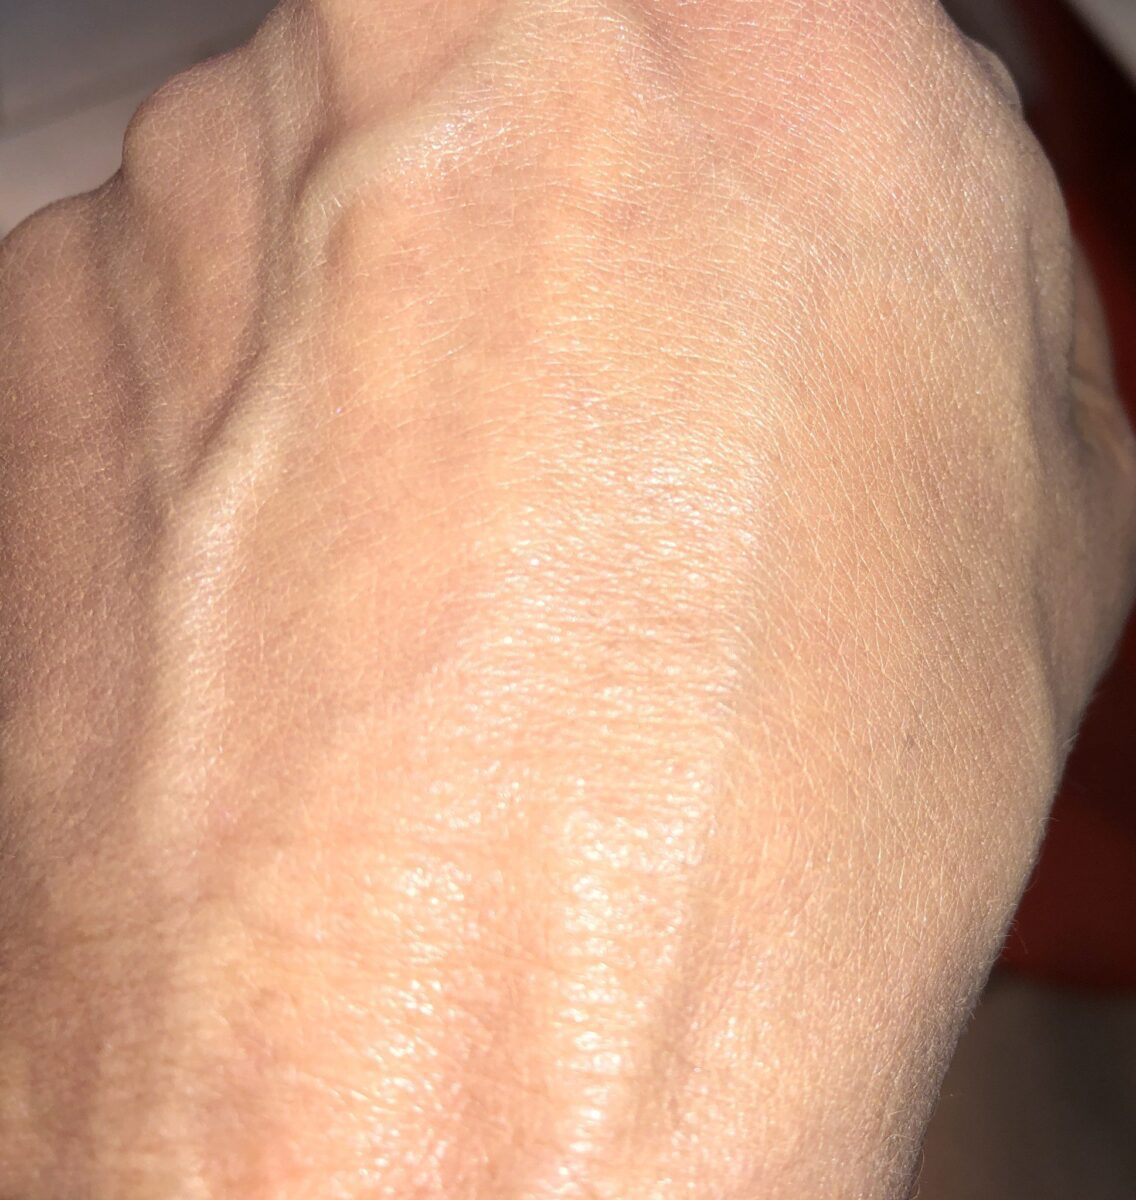 SWATCH OF SHADE 3N1 IVORY BEIGE BLENDED INTO MY HAND